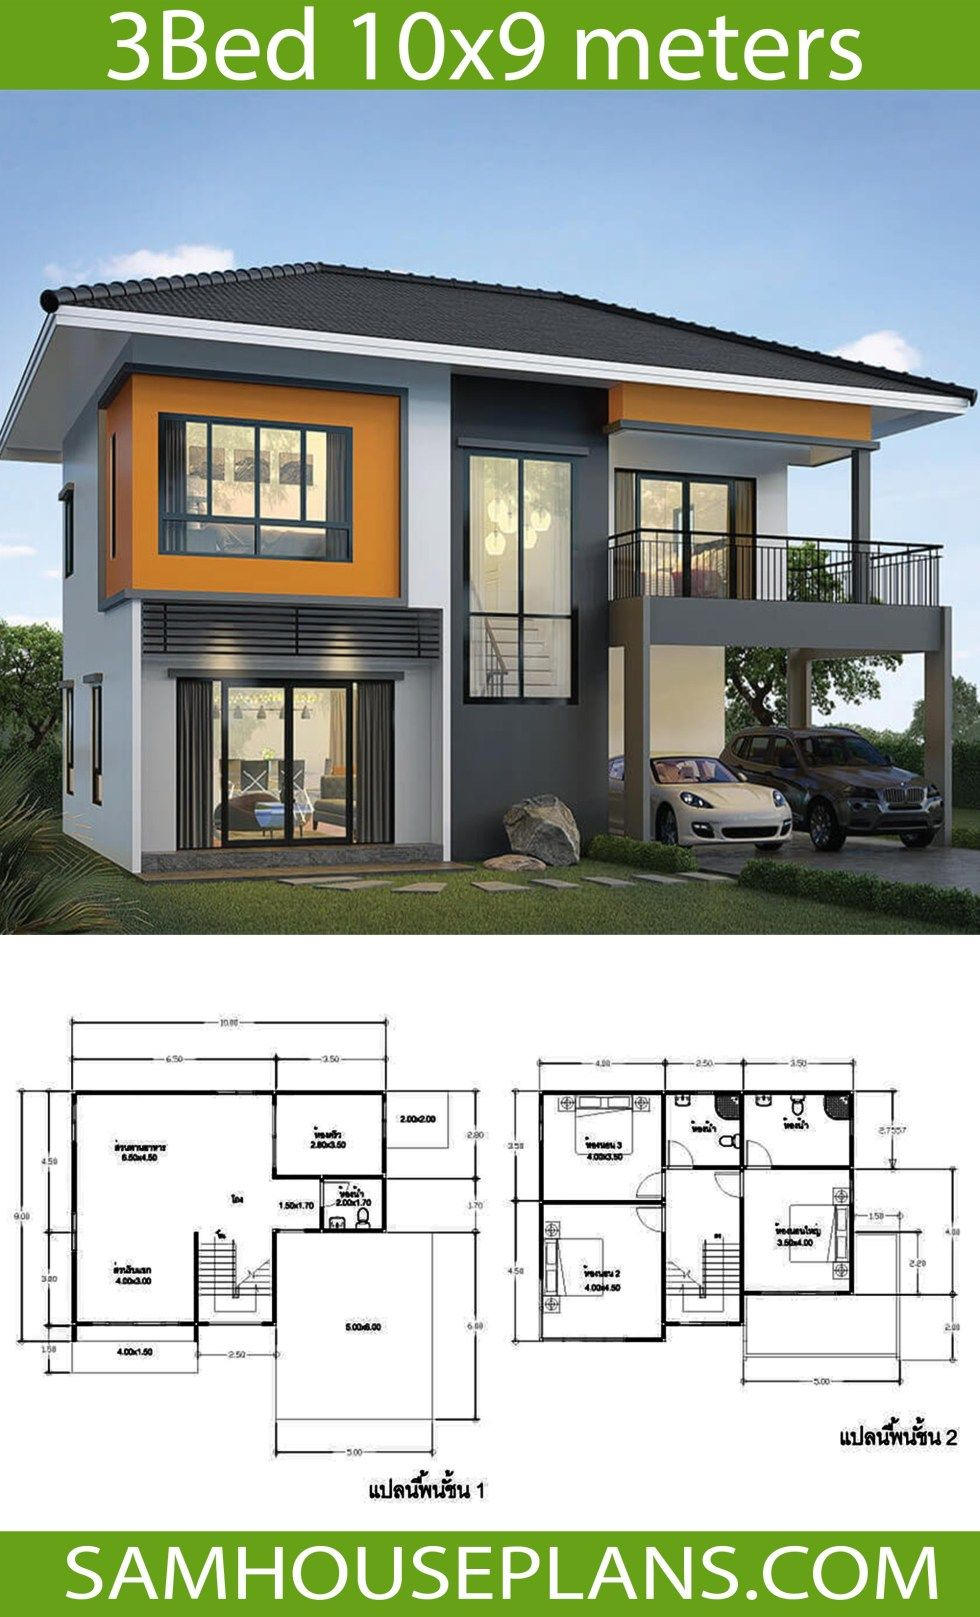 New Model House Design Luxury House Plans Idea 10x9m with 3 Bedrooms